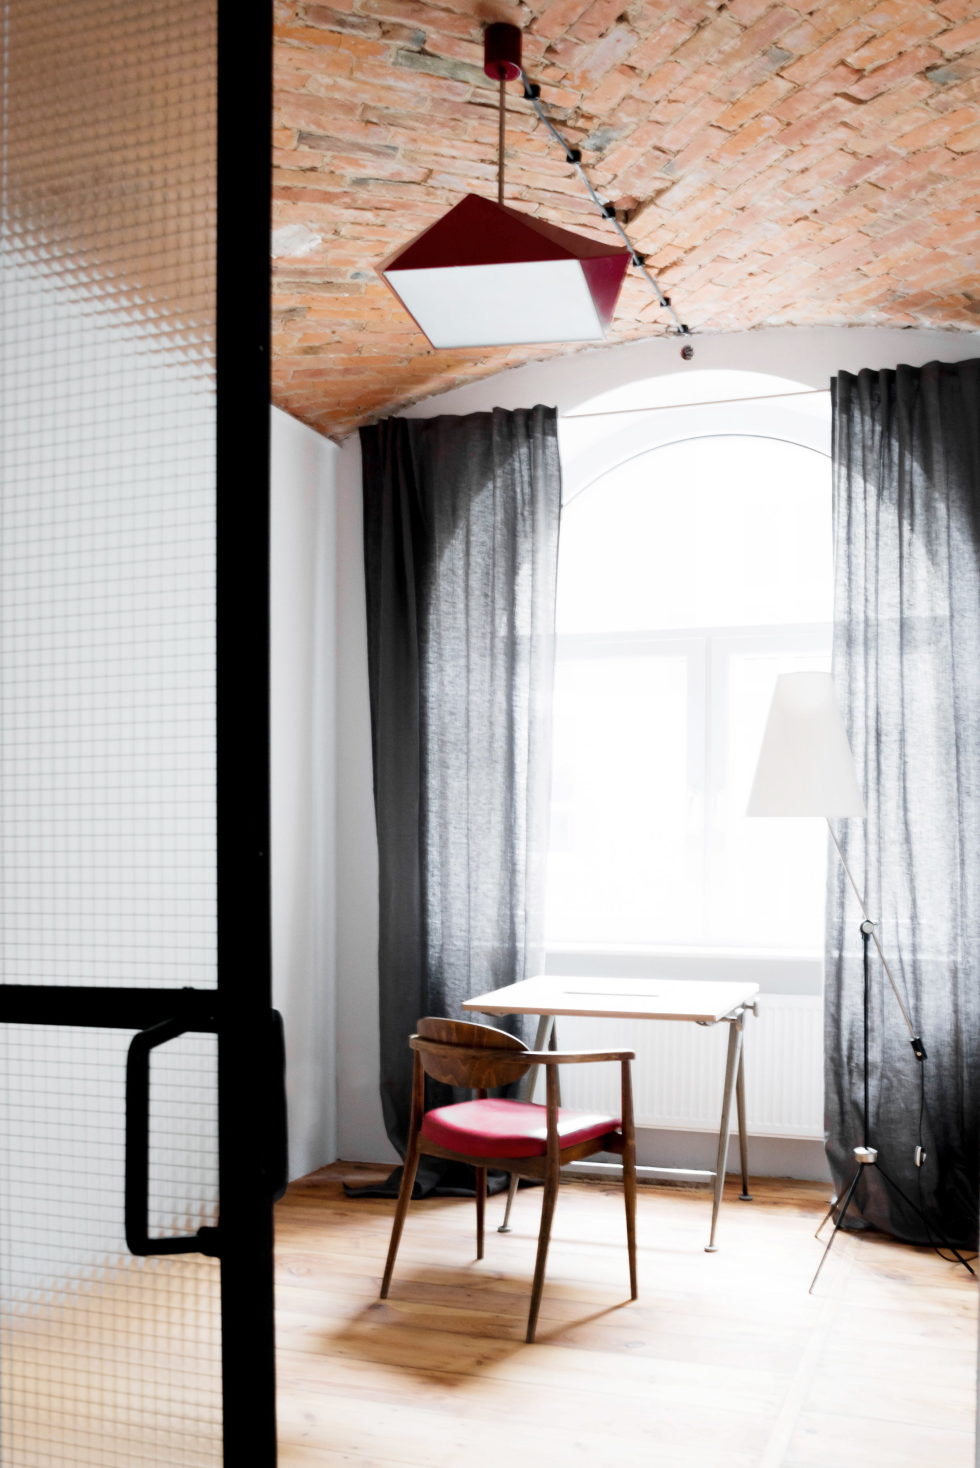 Loft On The Place Of Former Marmalade Factory In Poland 4